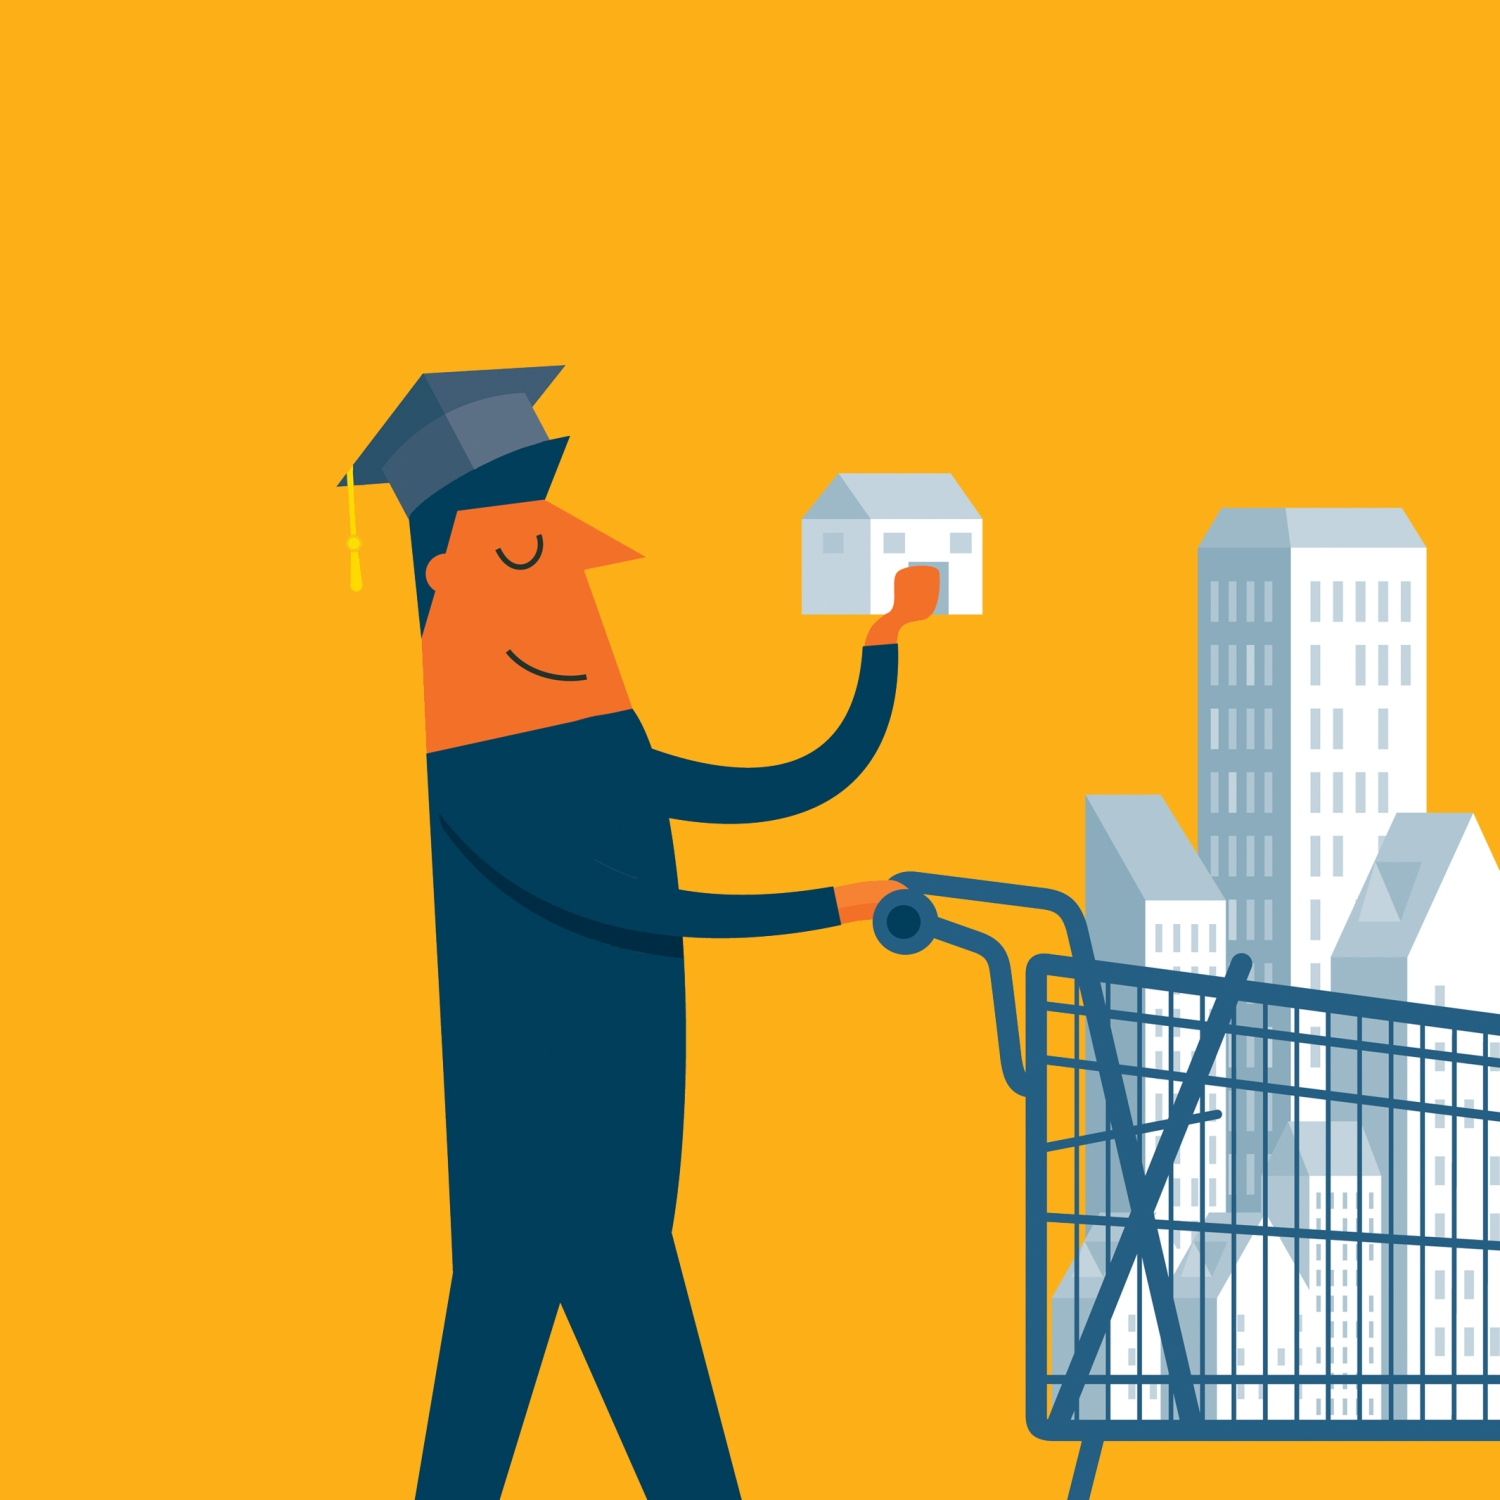 Illustration of graduate with shopping cart full of property